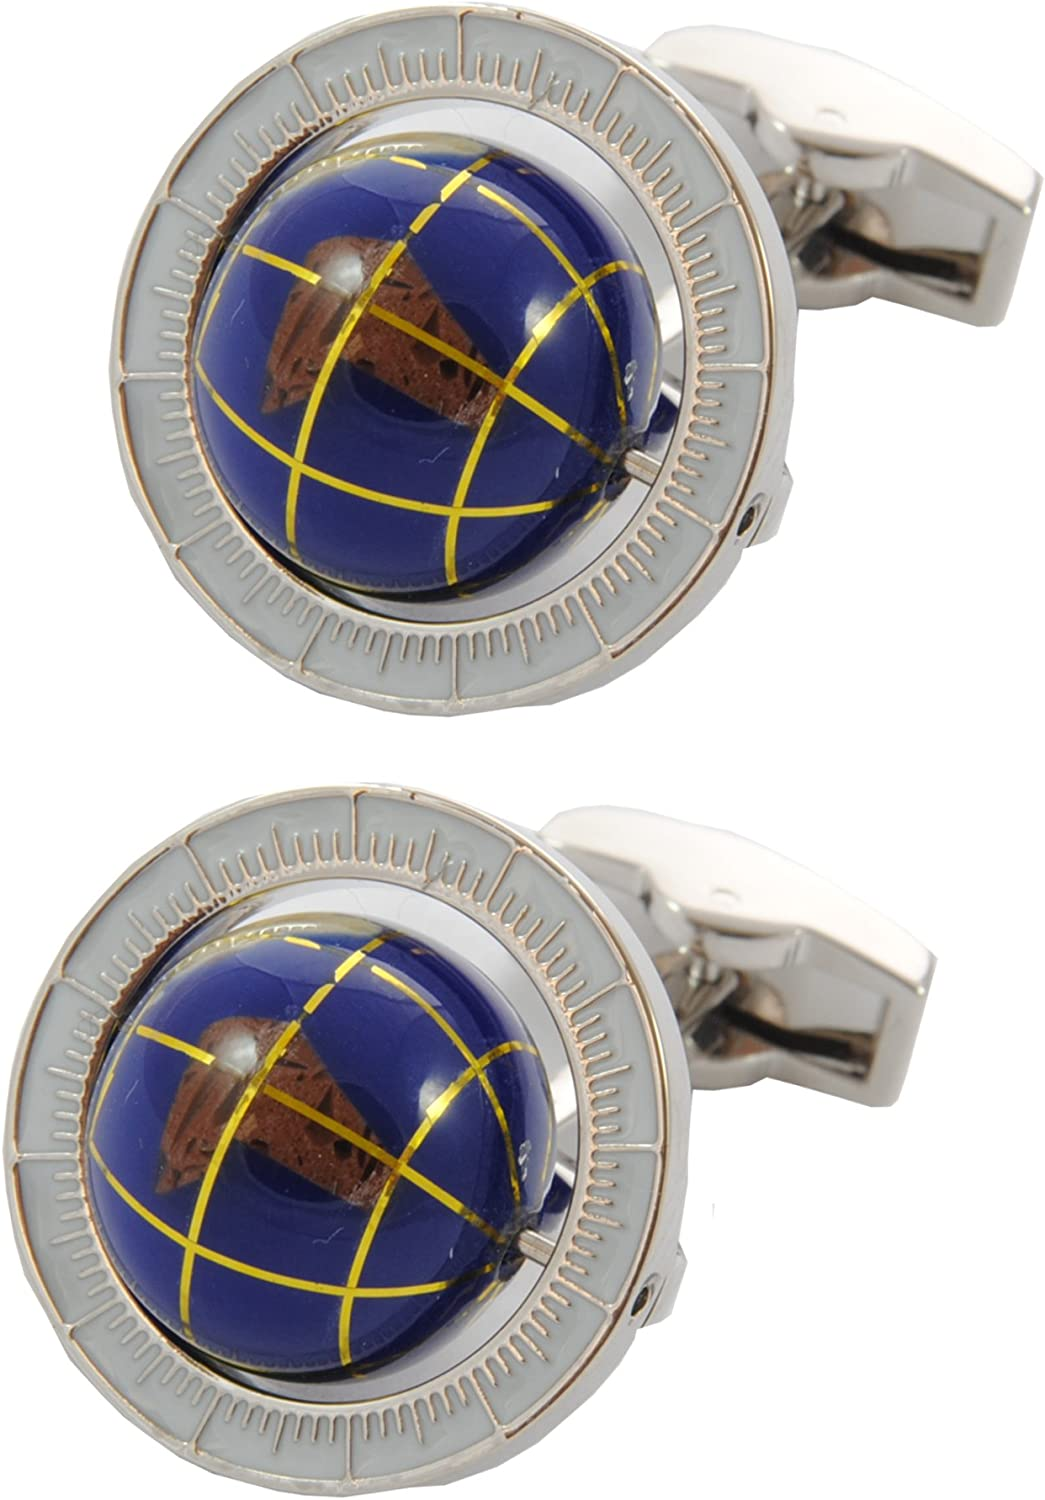 COLLAR AND CUFFS LONDON - Premium Cufflinks with Gift Box - Spinning Globe - Travel The World - Round Earth Rotating - Blue Color